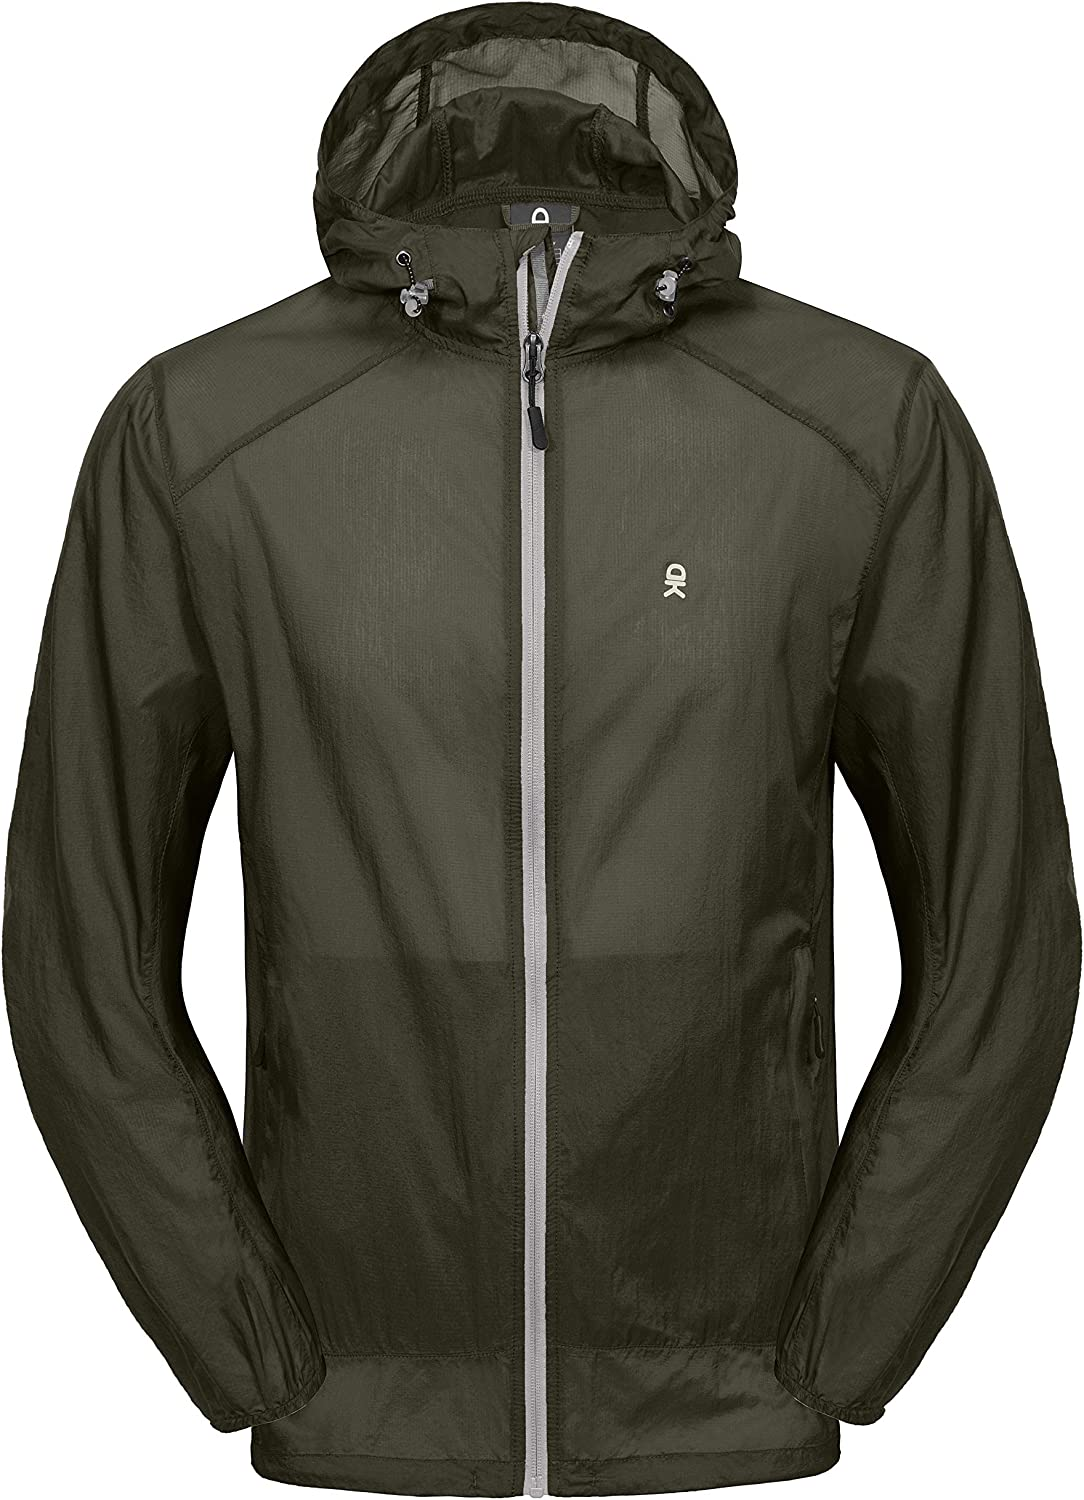 Max 84% OFF Little Donkey Andy Men's UPF Jacket 50 Sun Brand new Packa Protection